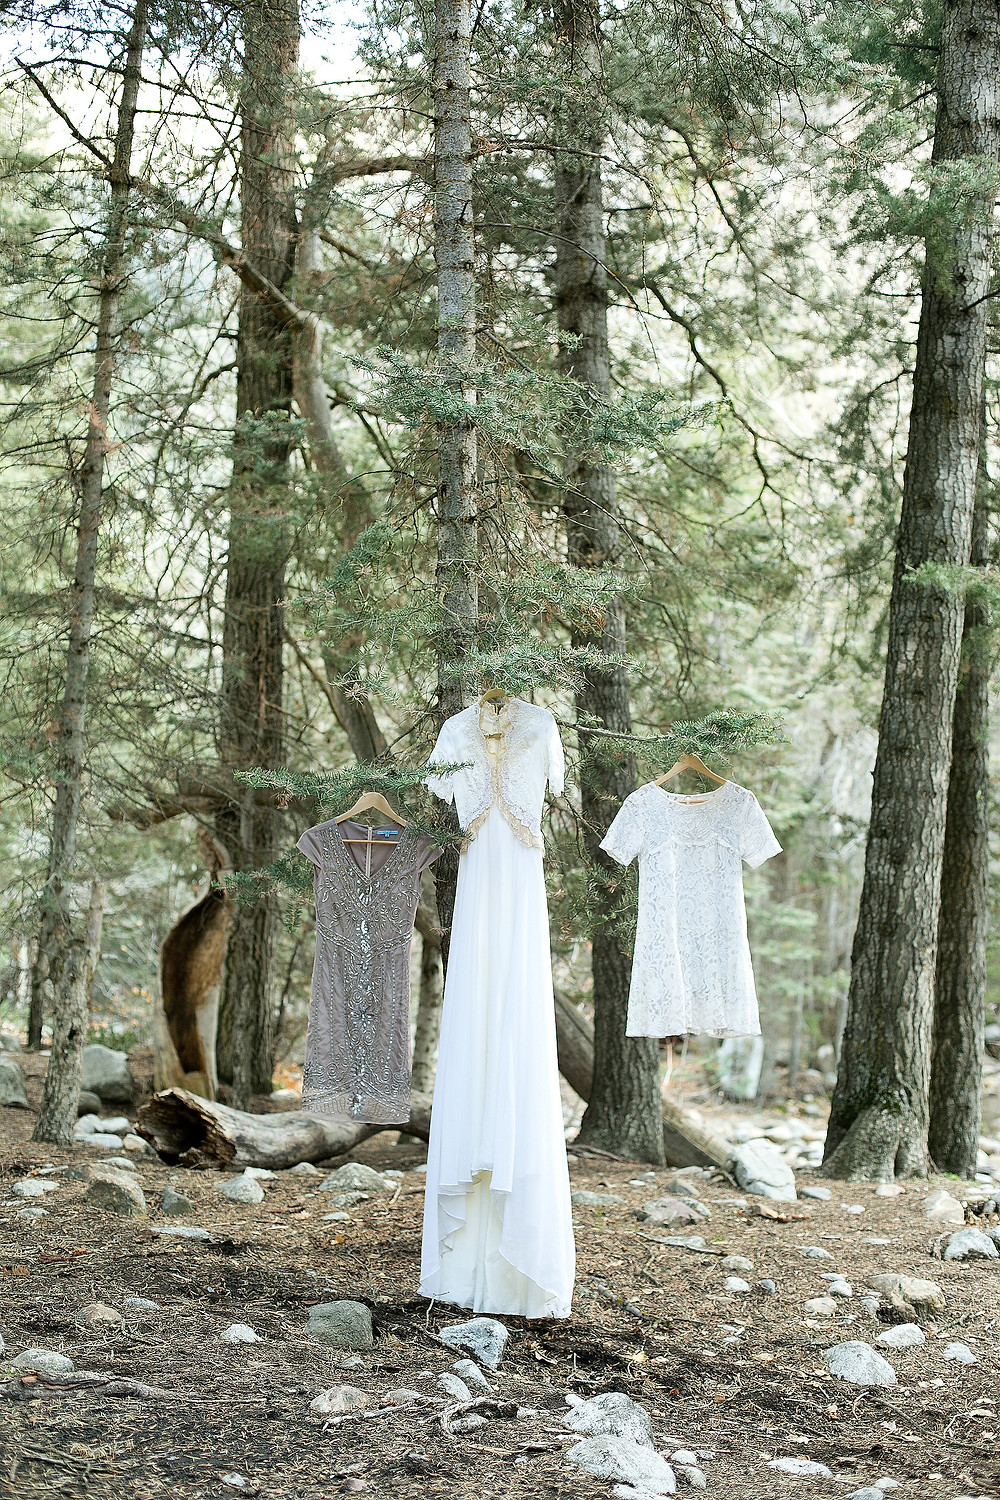 three dresses hanging from trees